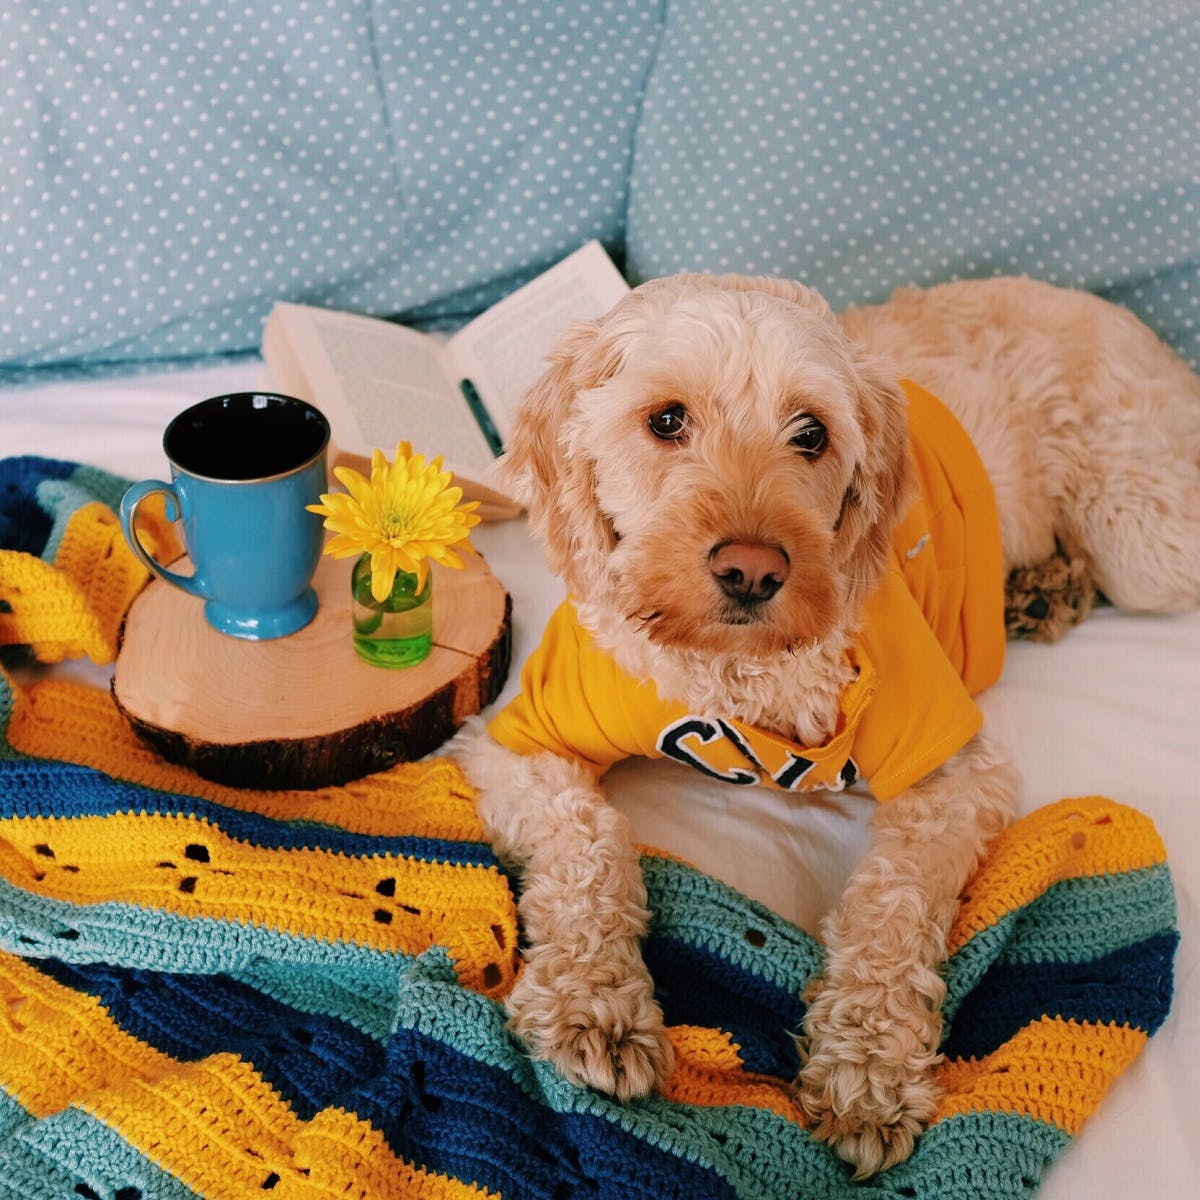 A curly haired blonde dog wearing a thundershirt